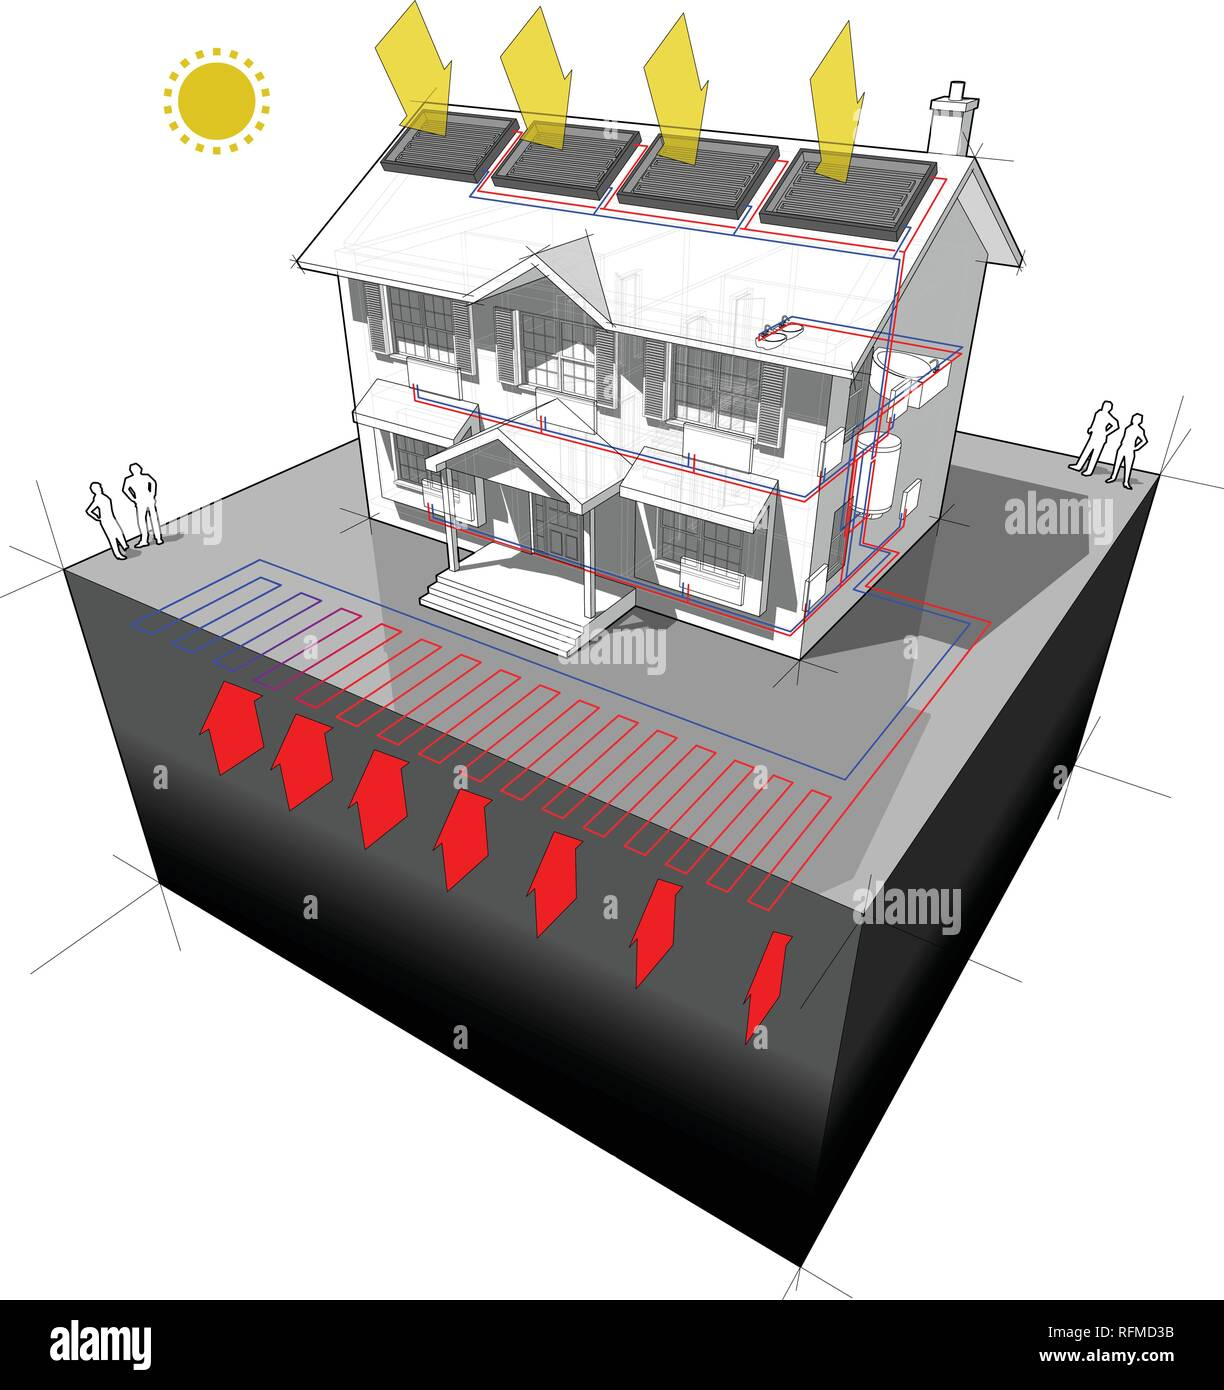 diagram of a classic colonial house with planar ground source heat pump and solar panels on the roof as source of energy for heating - Stock Vector